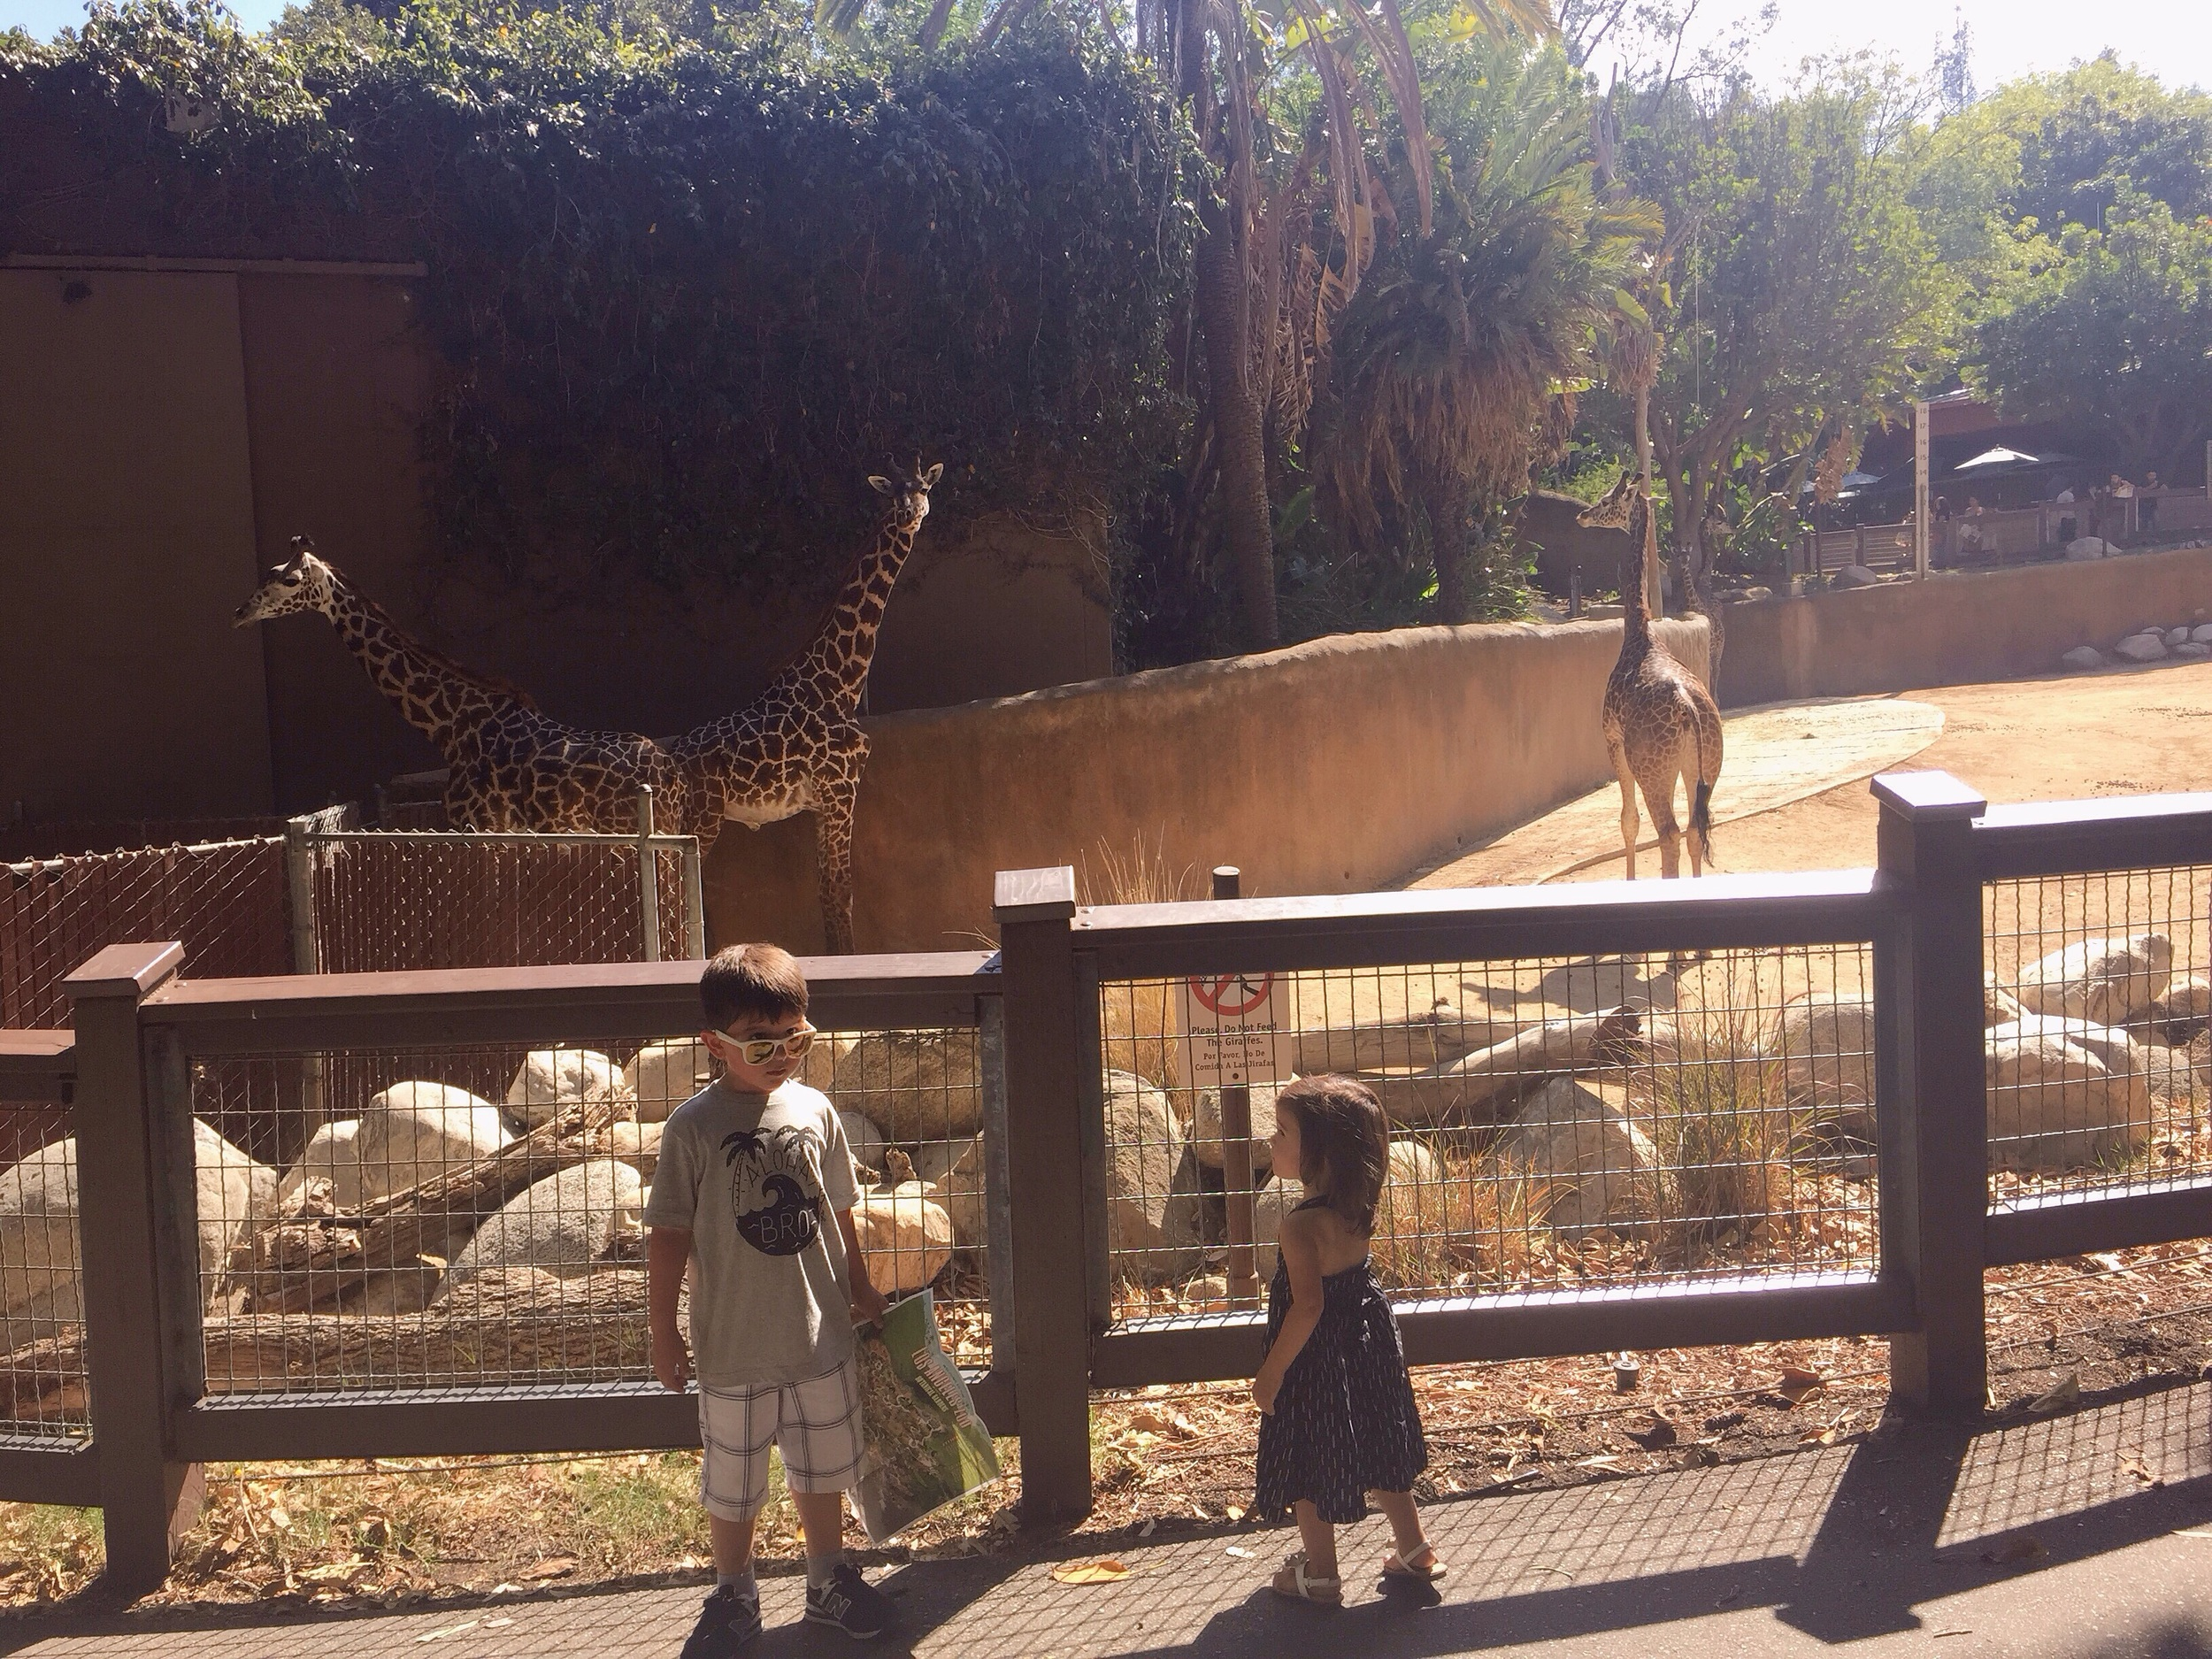 Dominika loved the giraffes